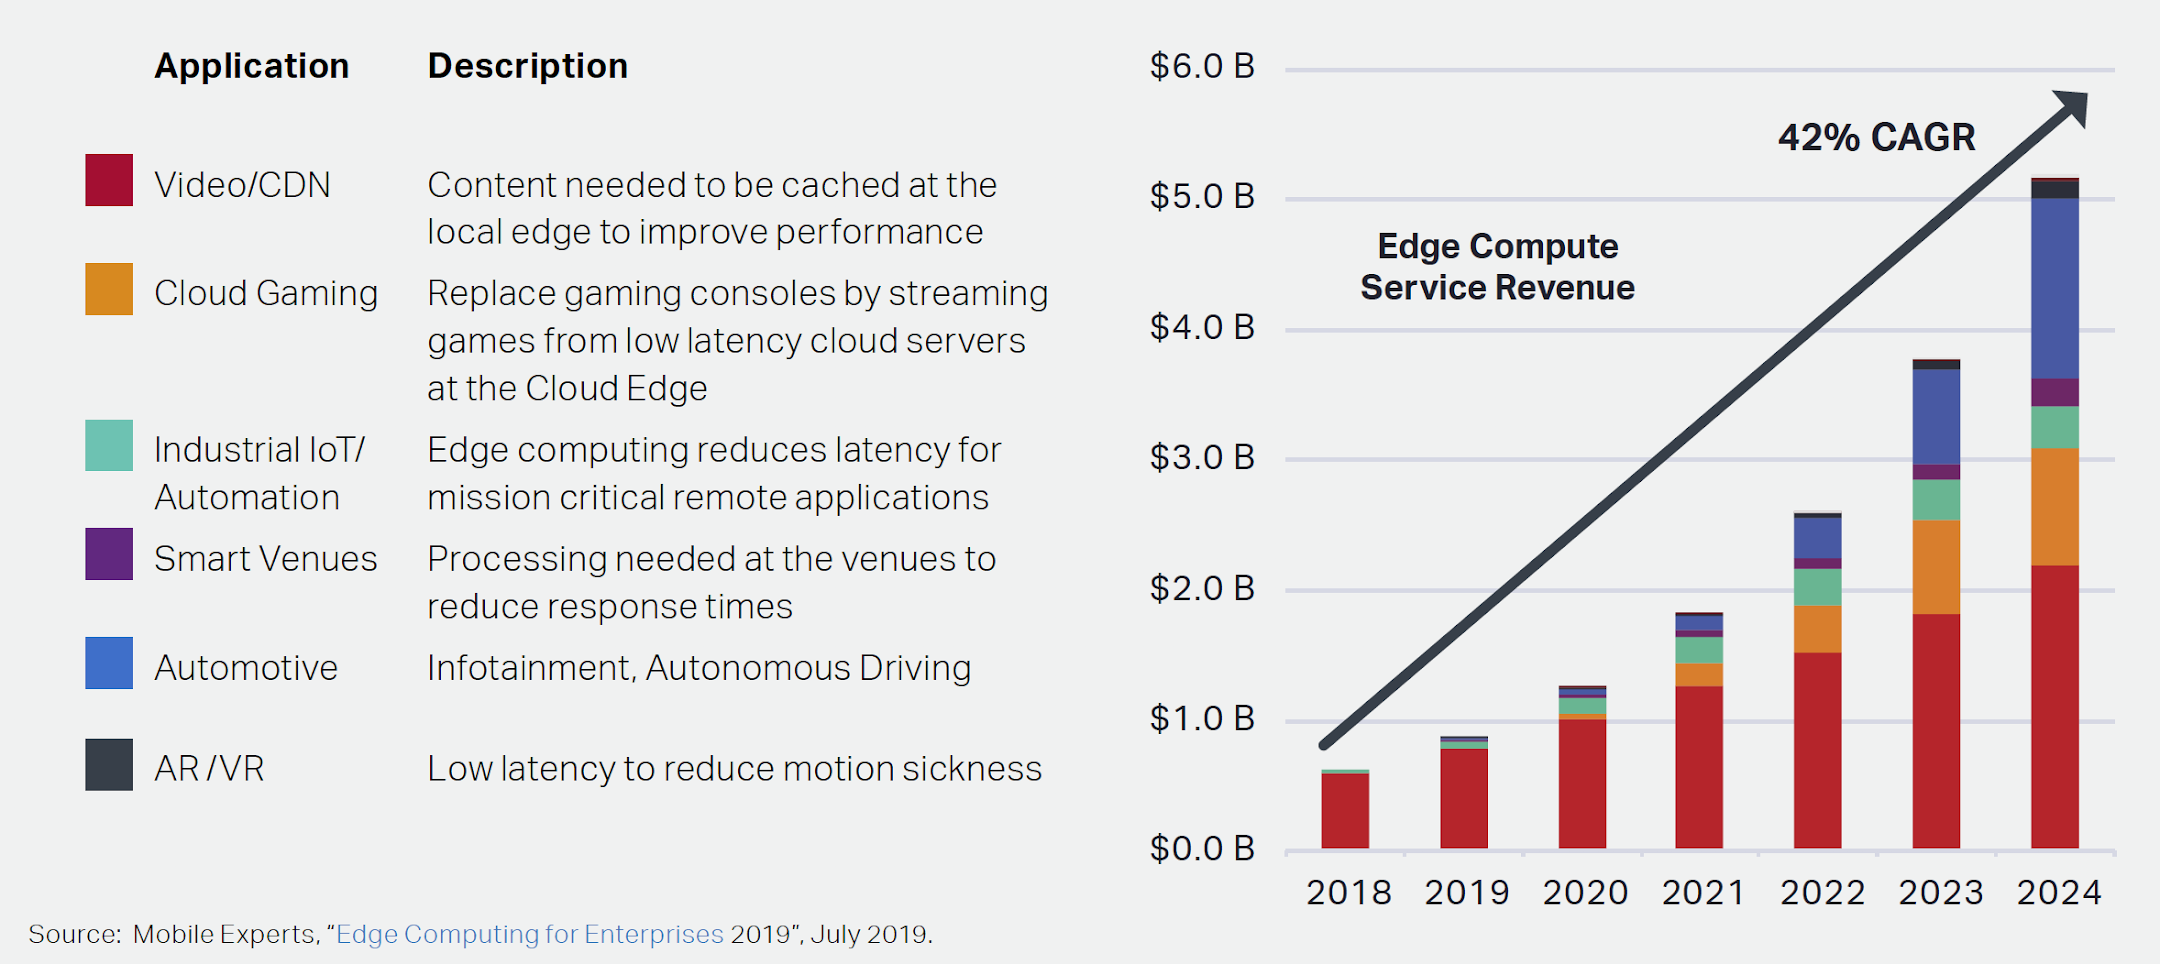 Figure 1. Top applications by revenue for edge computing